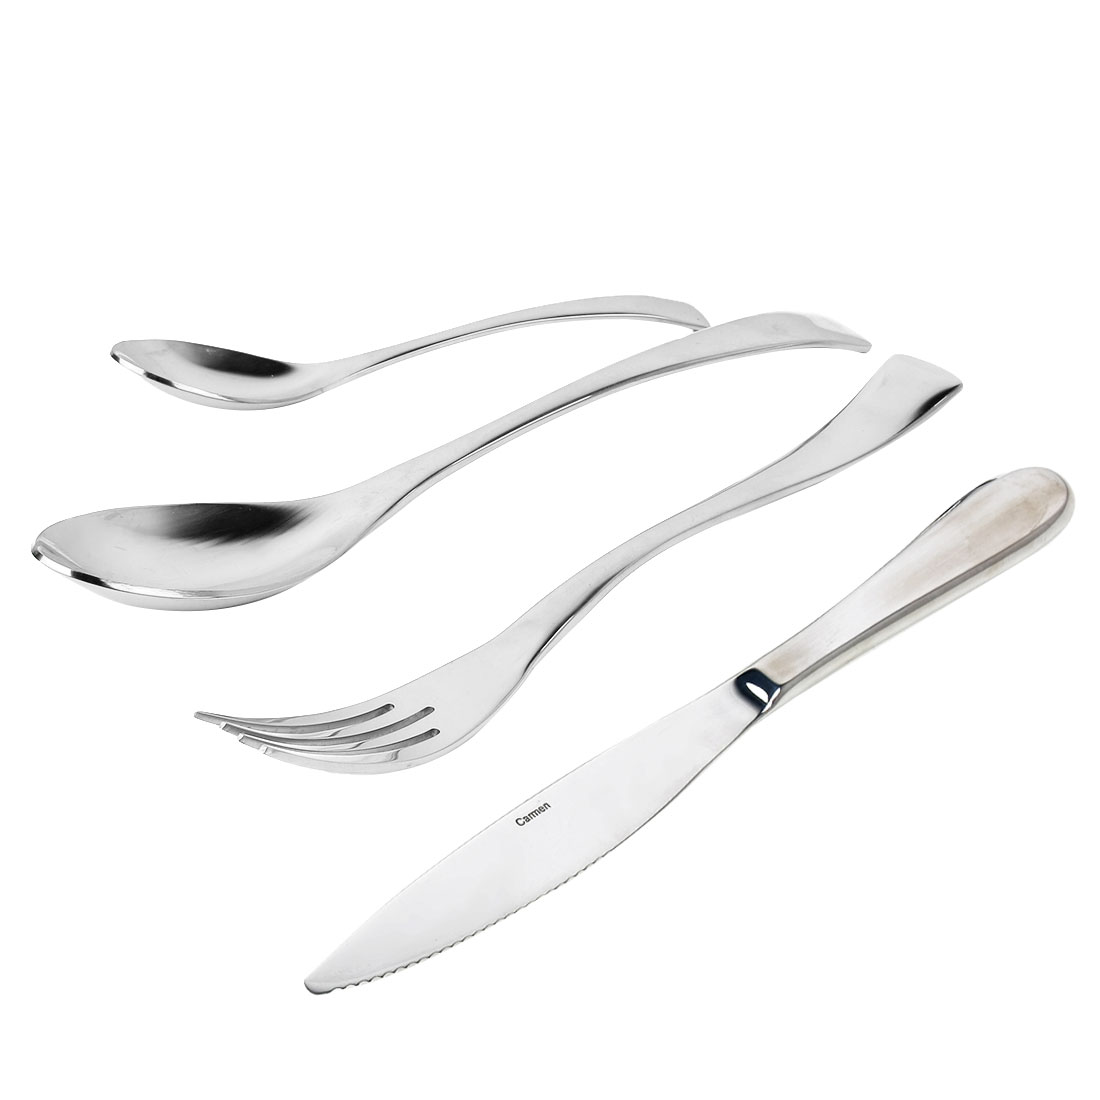 Casa-J 4 Pieces Serving Flatware Cutlery Set, 18/10 Stainless Steel, Service for 1